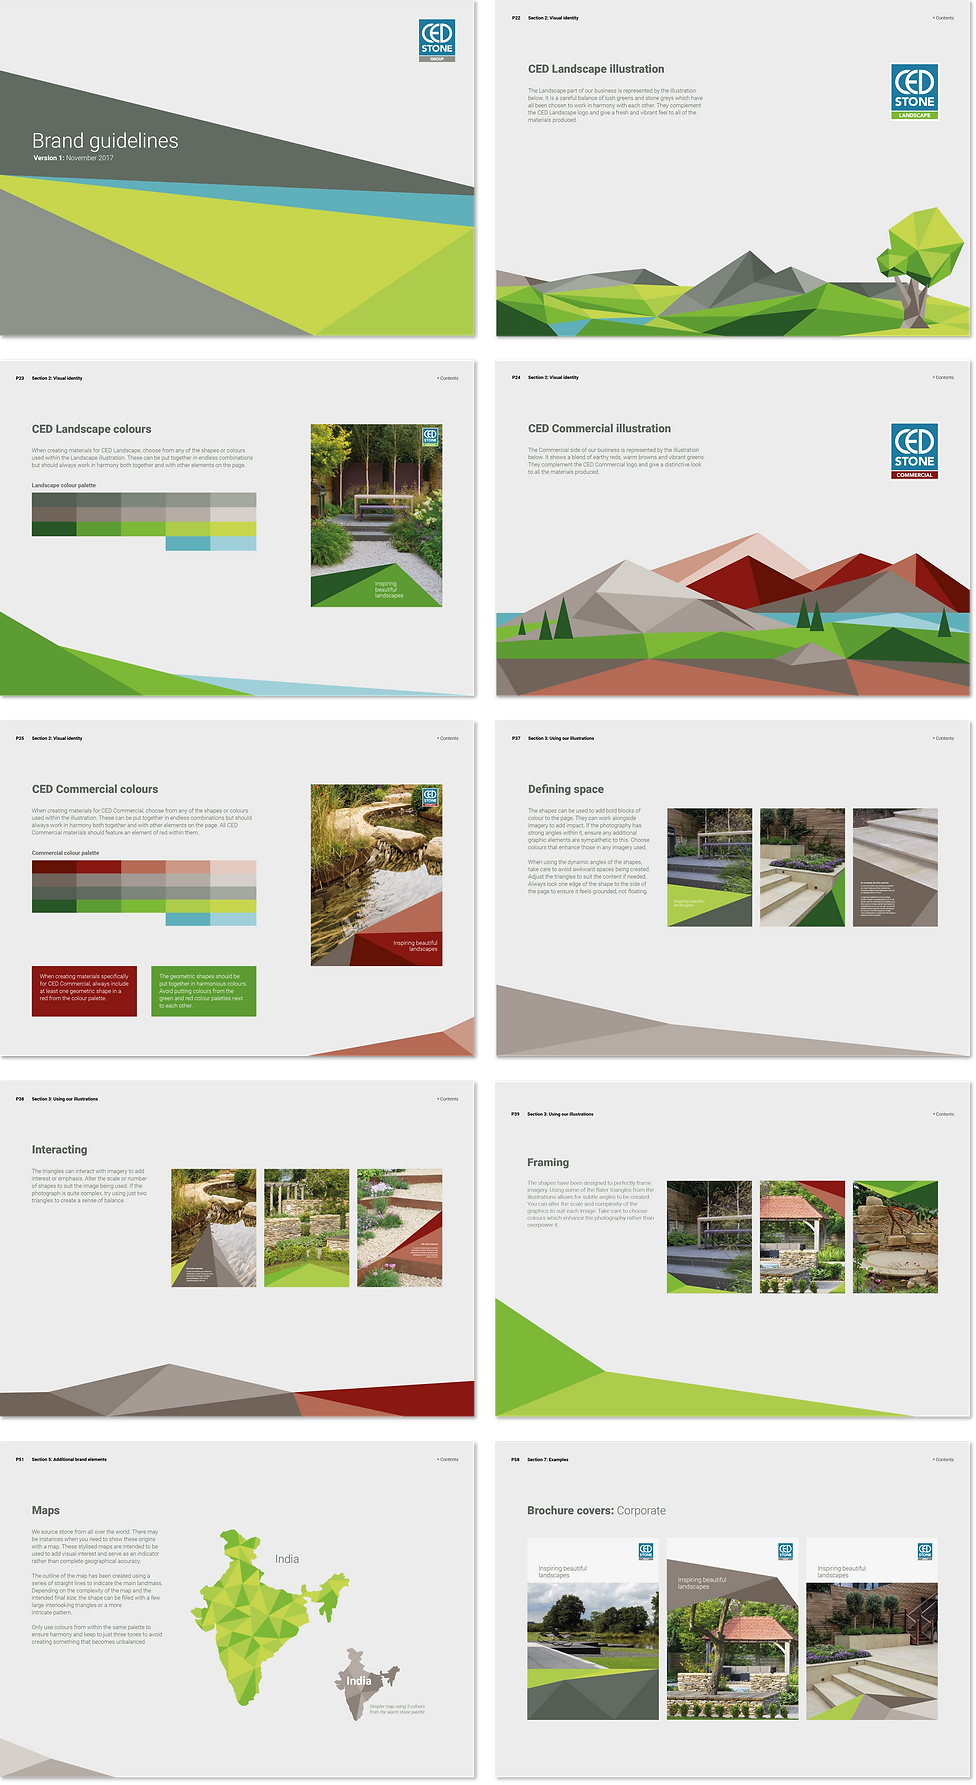 AP_Brand Guidelines_CED Brand guidelines